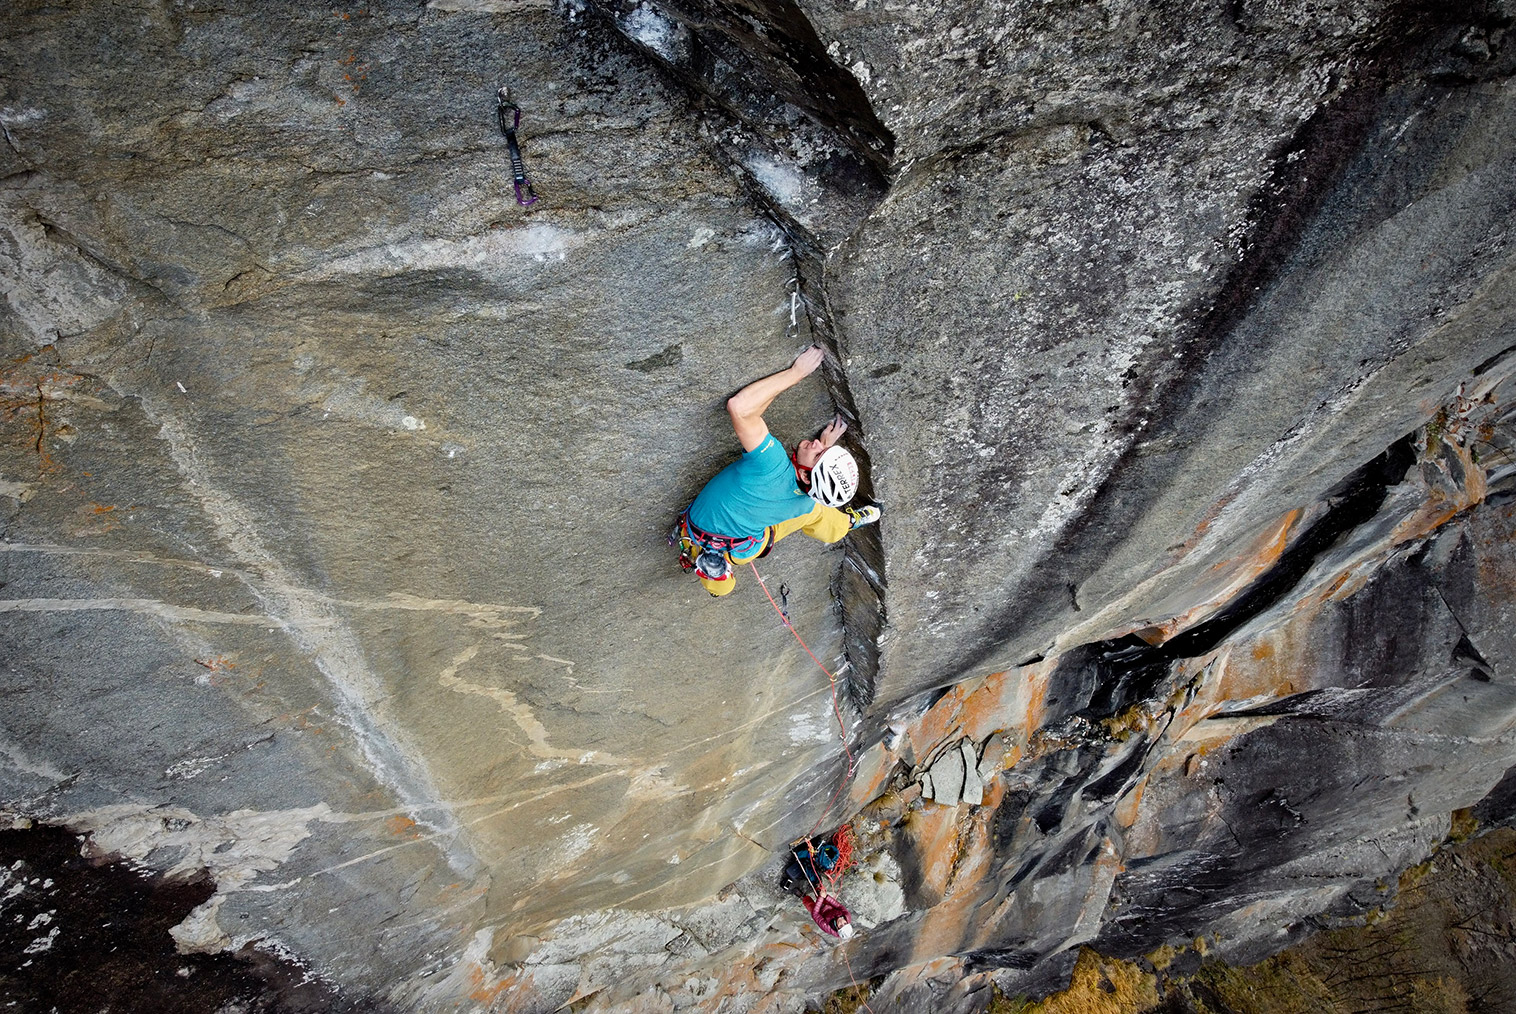 Christopher Igel on the mini-dihedral of the crux sixth pitch